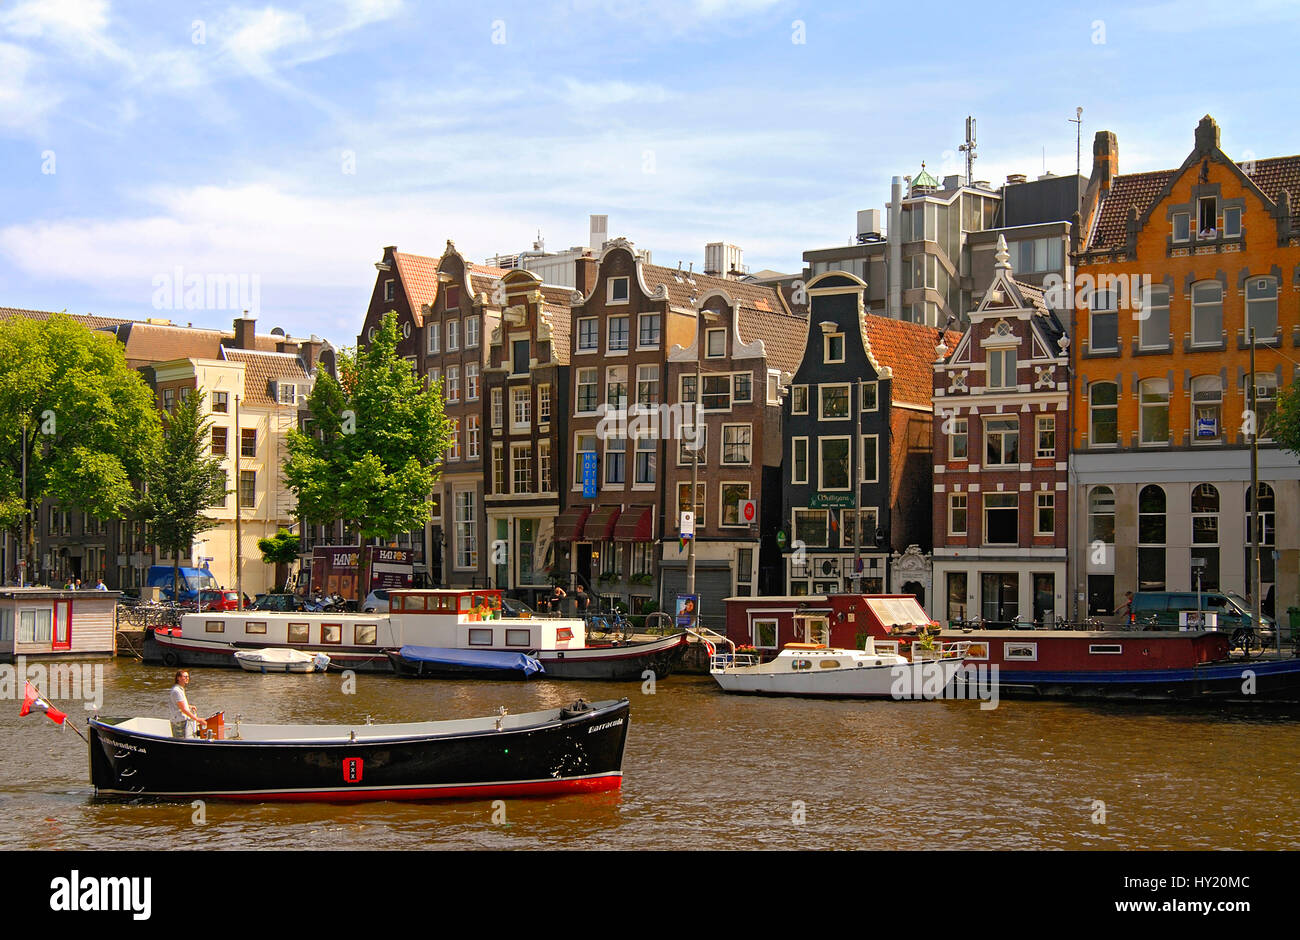 Image of small motor boat driving in a water channel in the inner city of Amsterdam, Holland. Stock Photo